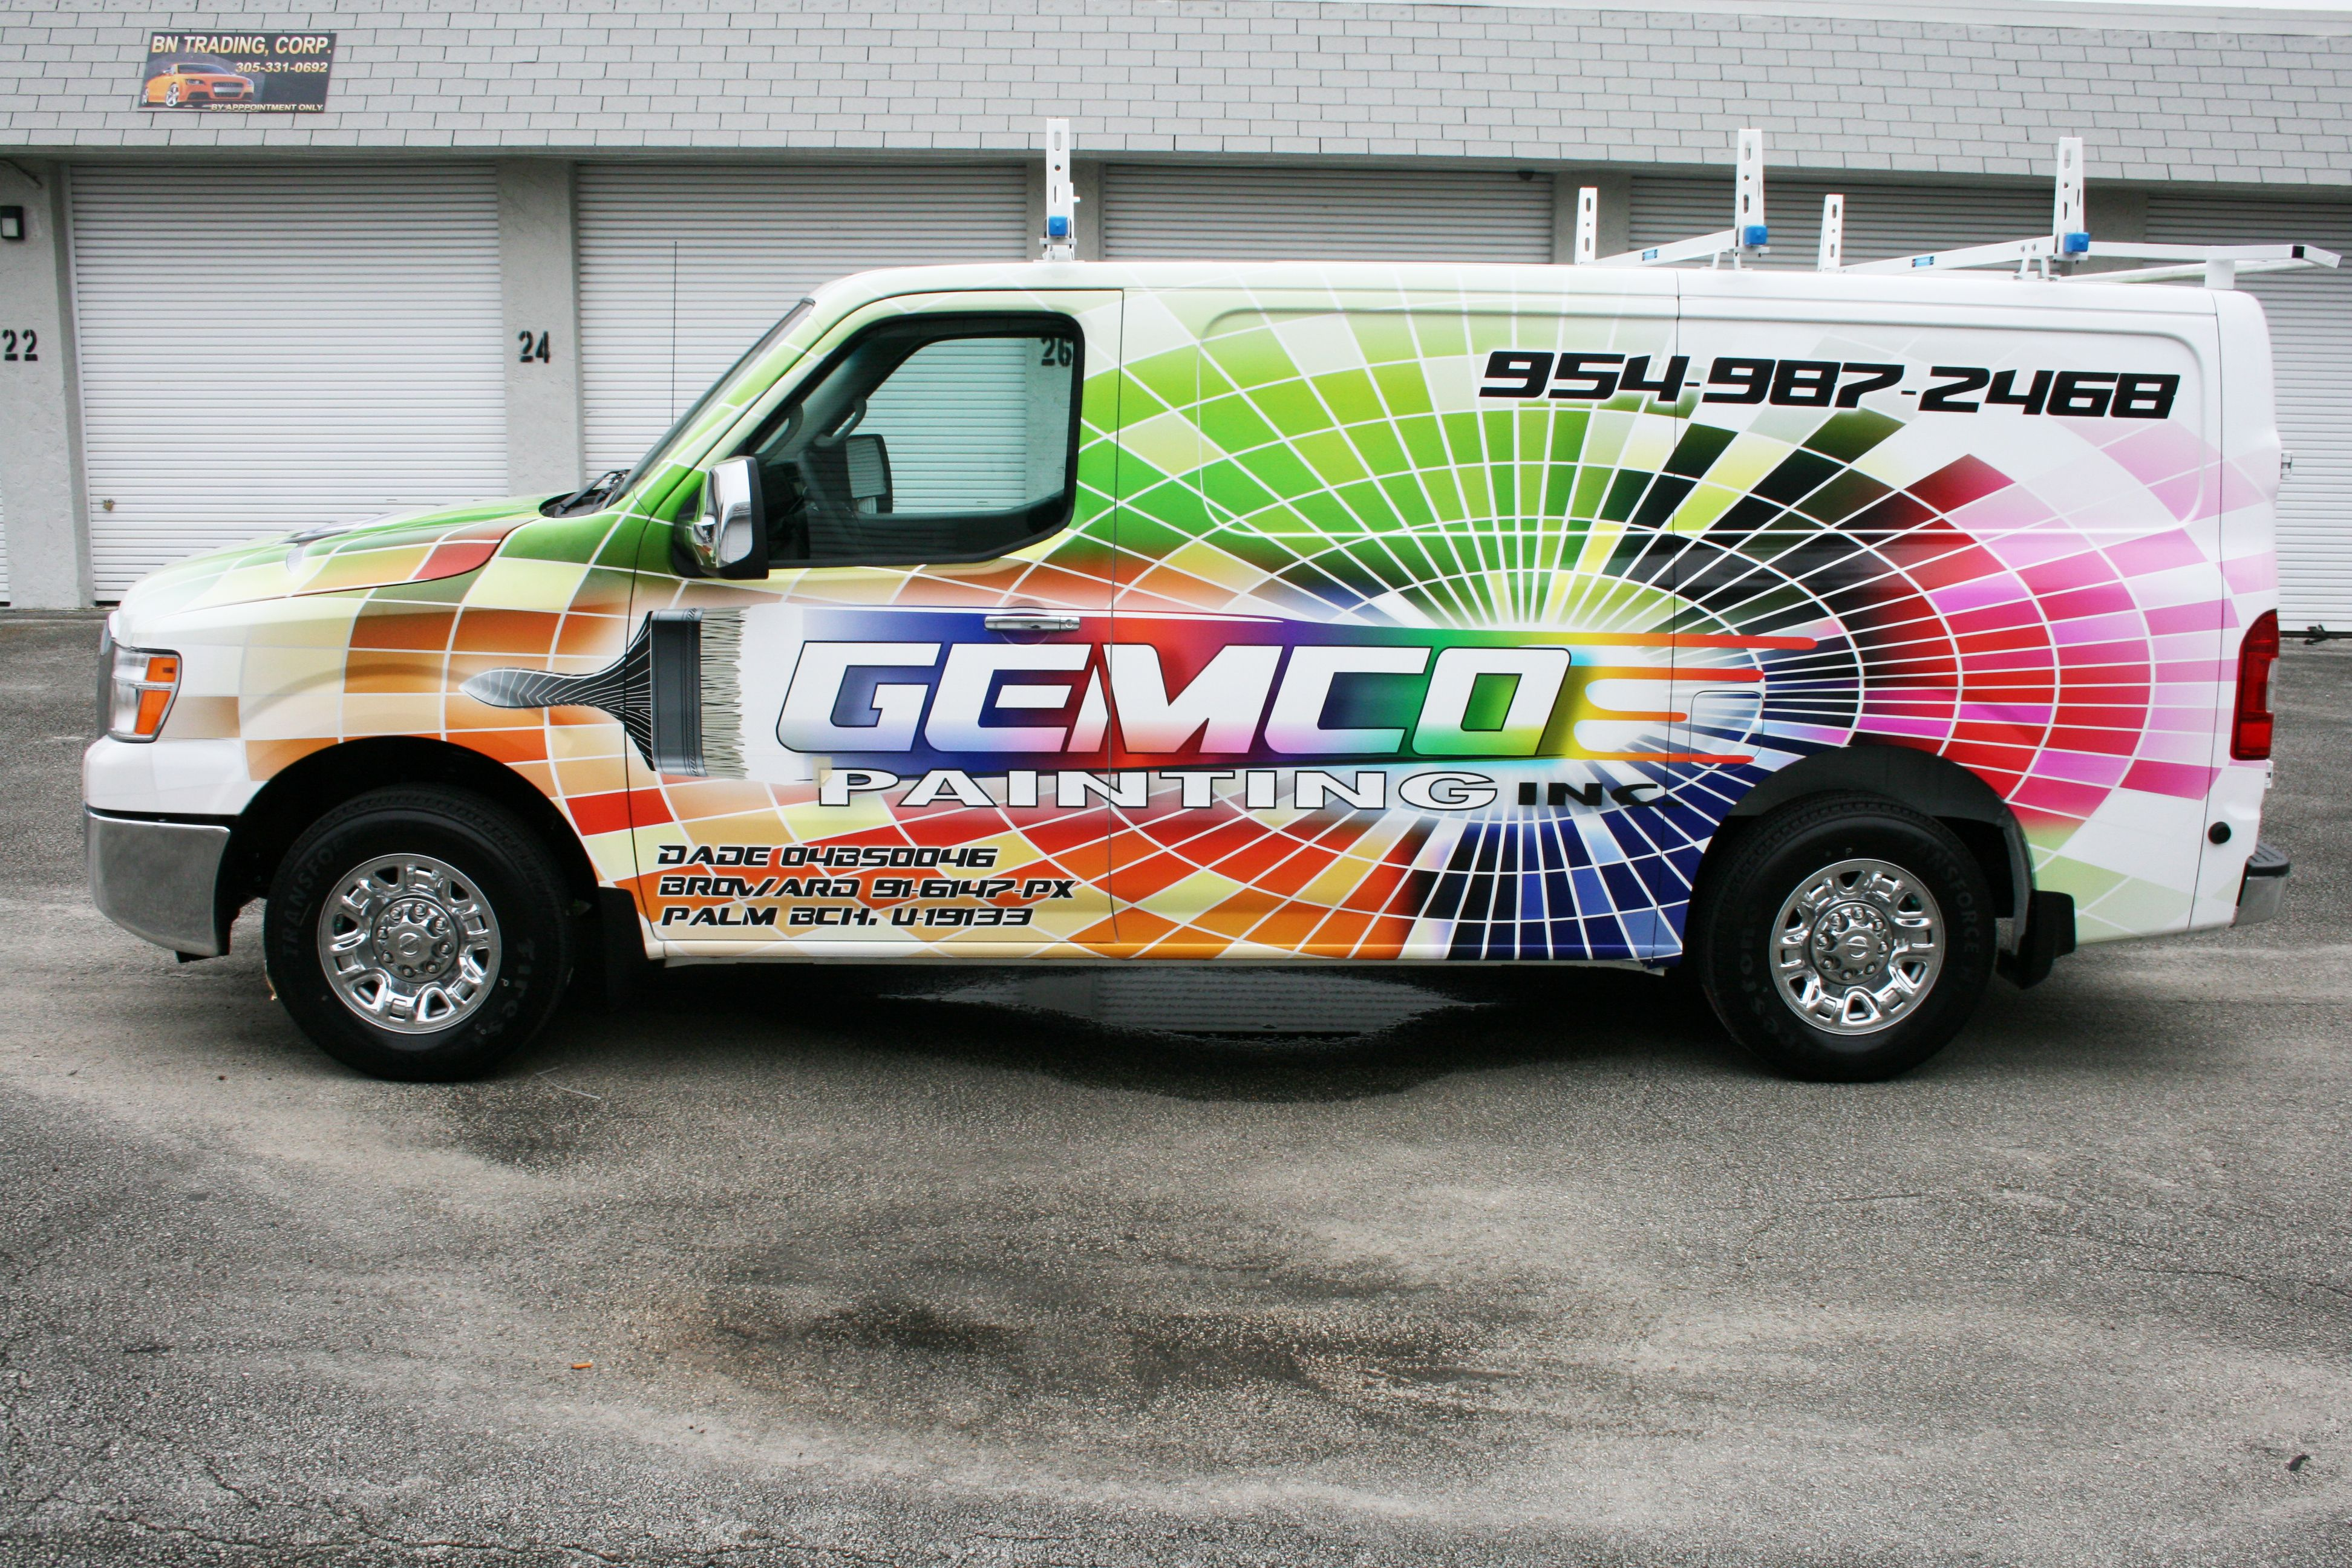 Comercial painting vehicle wrap for gemco painting in